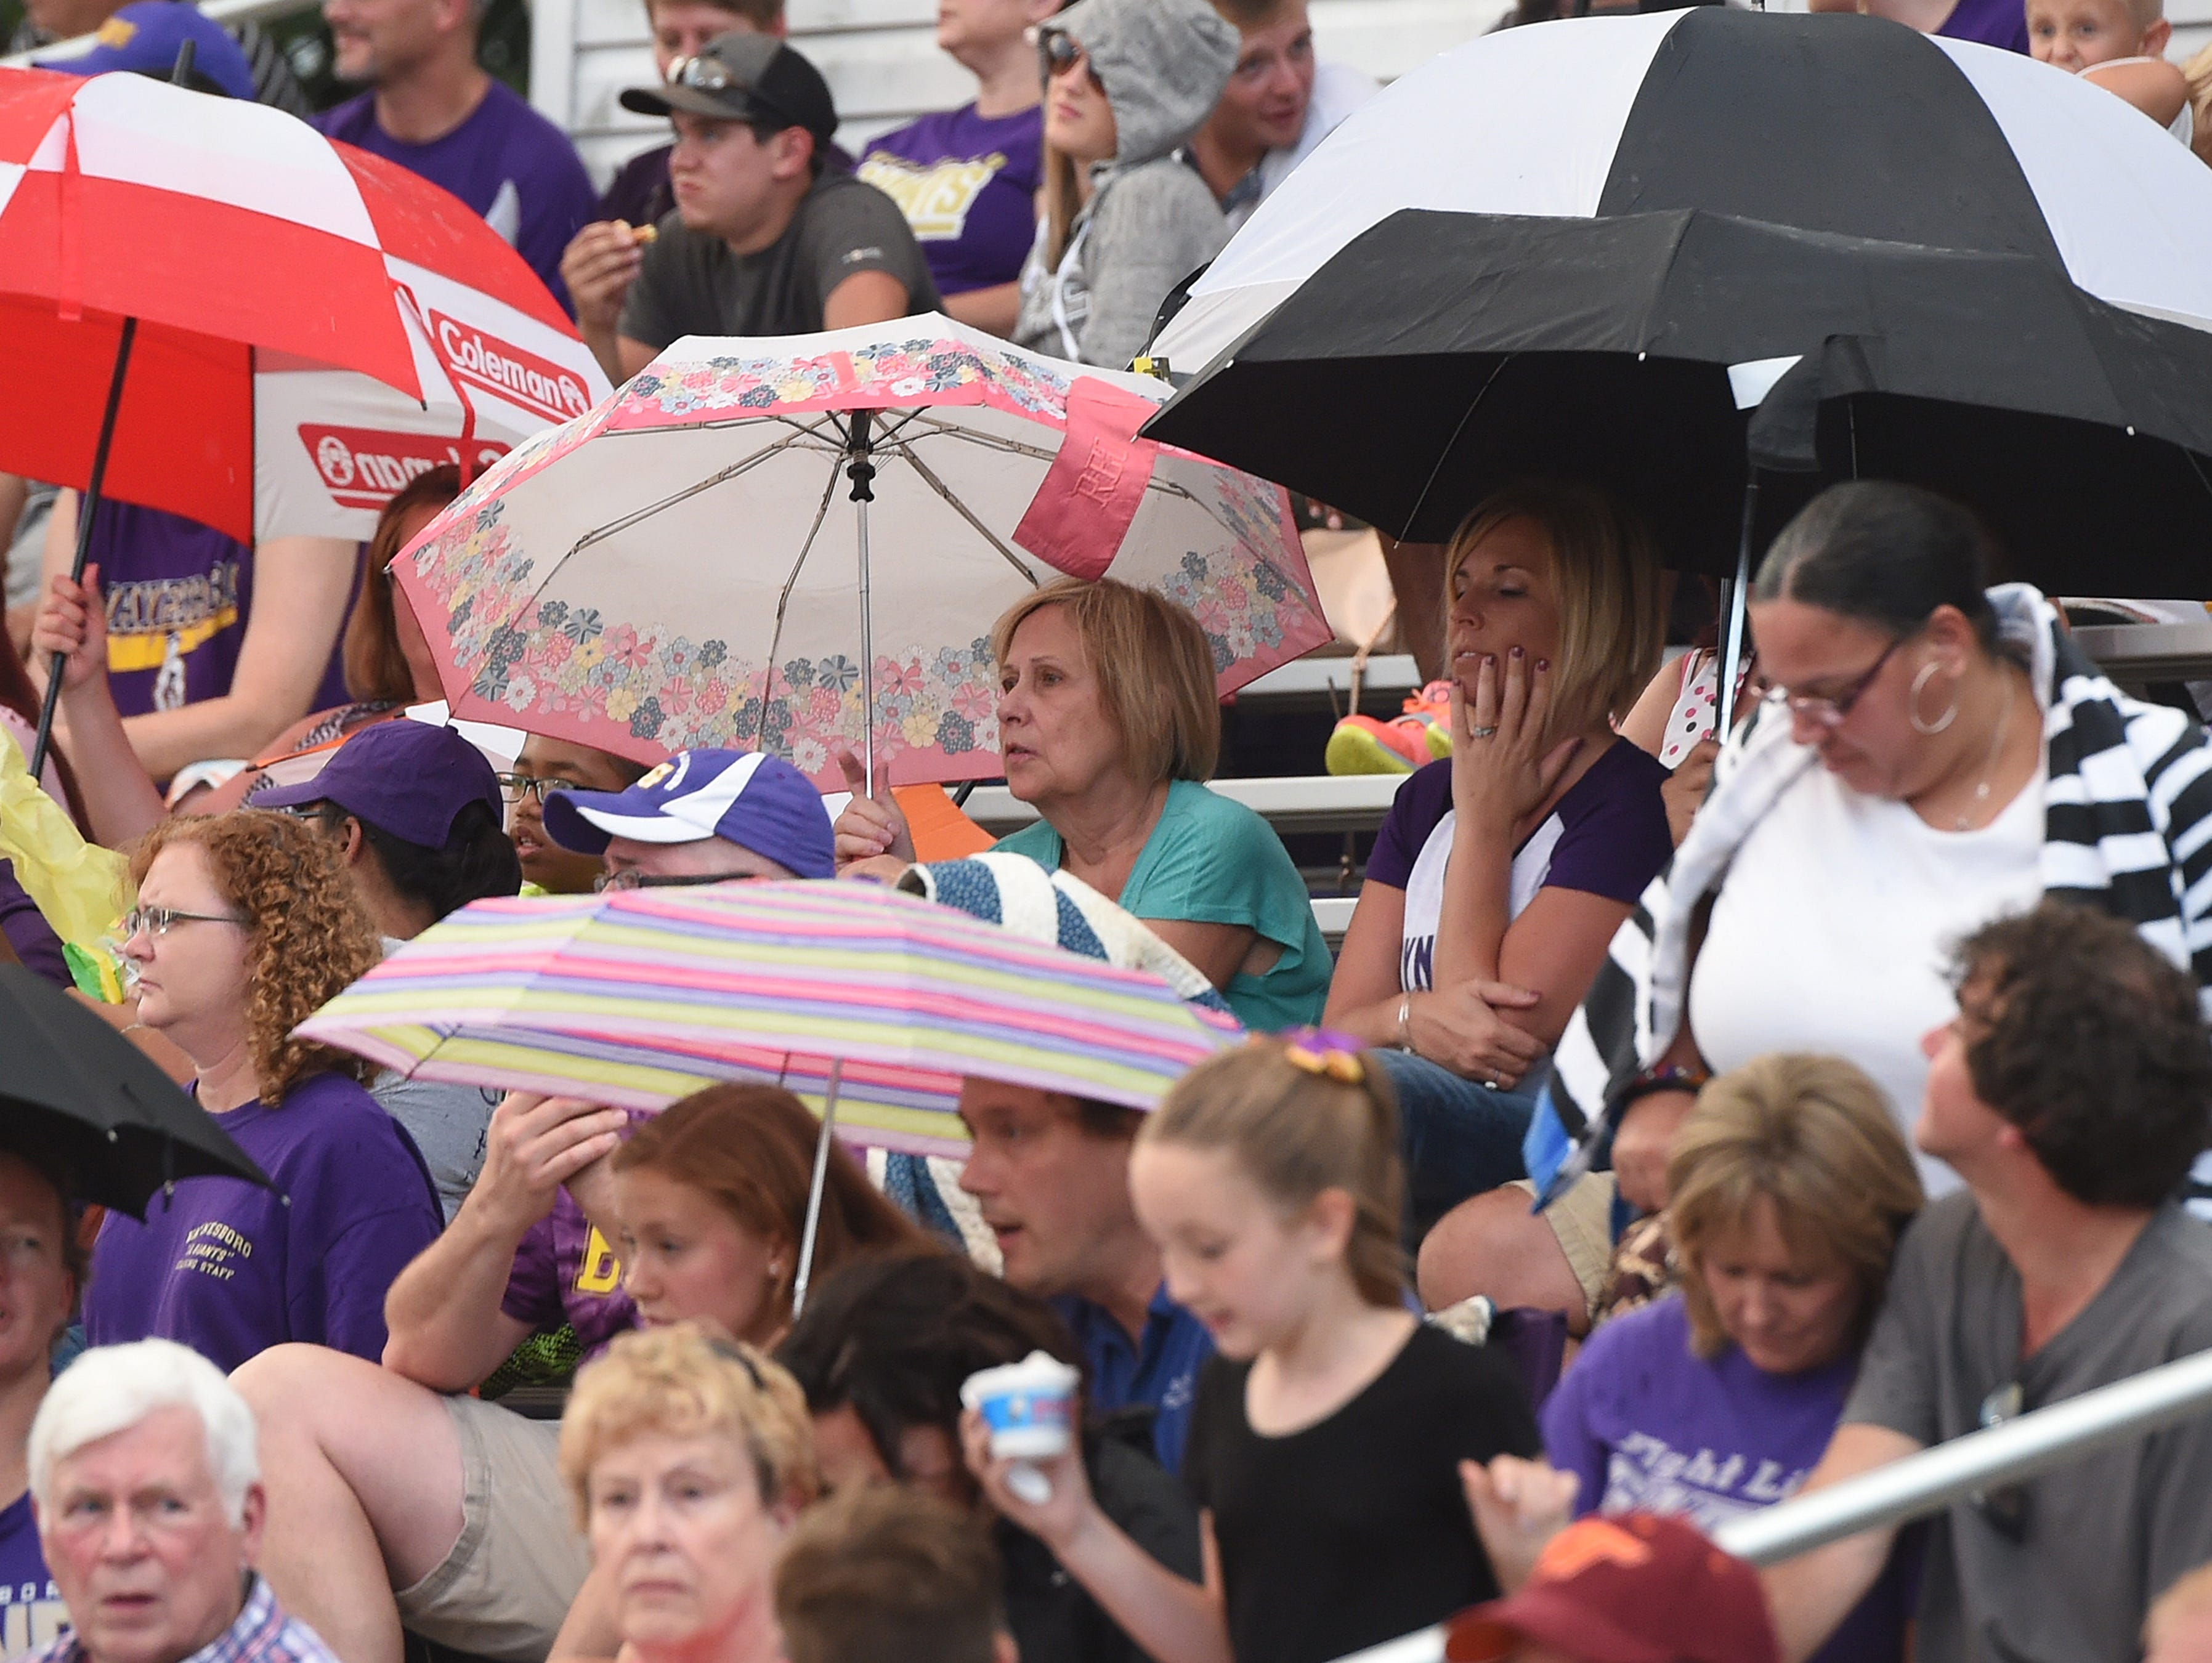 Fans find shelter from the rain that begins to fall using umbrellas during a football game played in Waynesboro on Friday, Aug. 26, 2016.